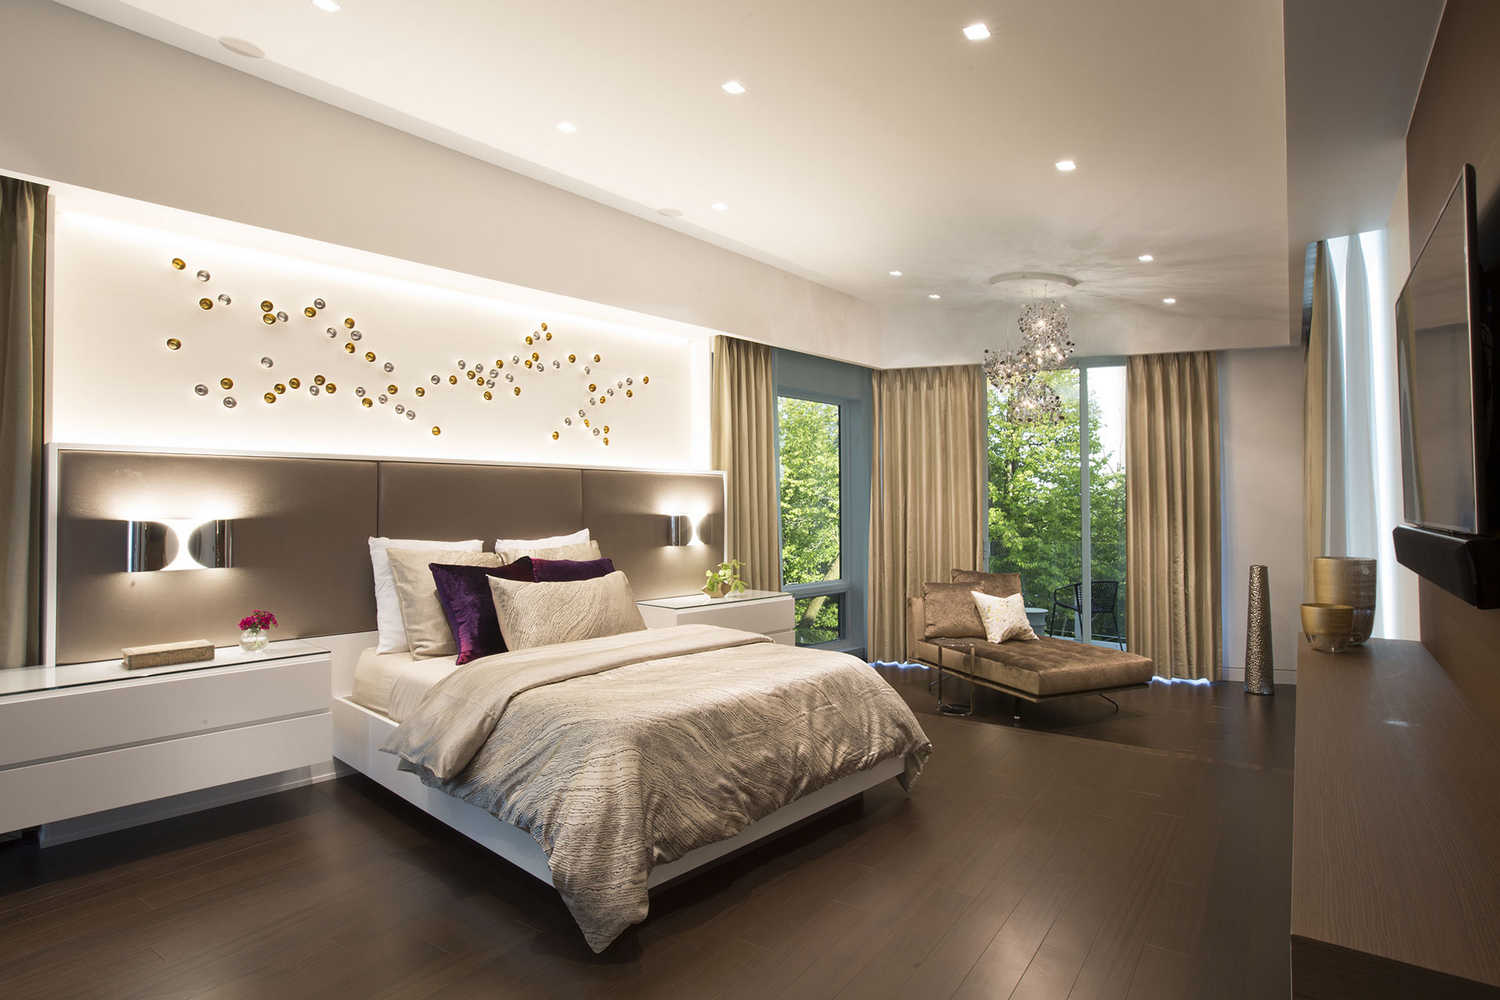 Master Bedroom Ideas Dkor Interior Design Portfolio